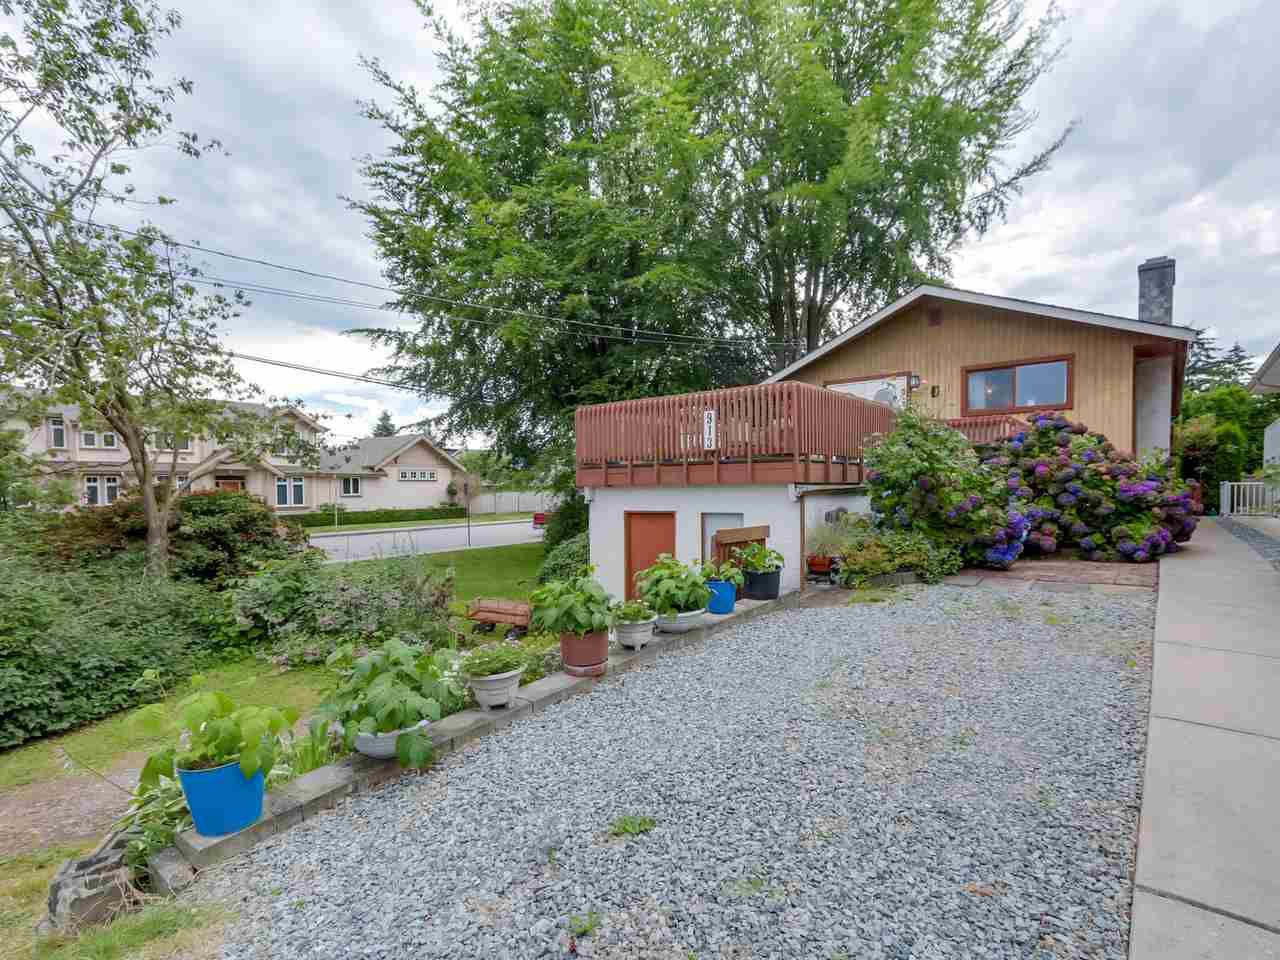 Main Photo: 913 PARKER Street: White Rock House for sale (South Surrey White Rock)  : MLS®# R2154134